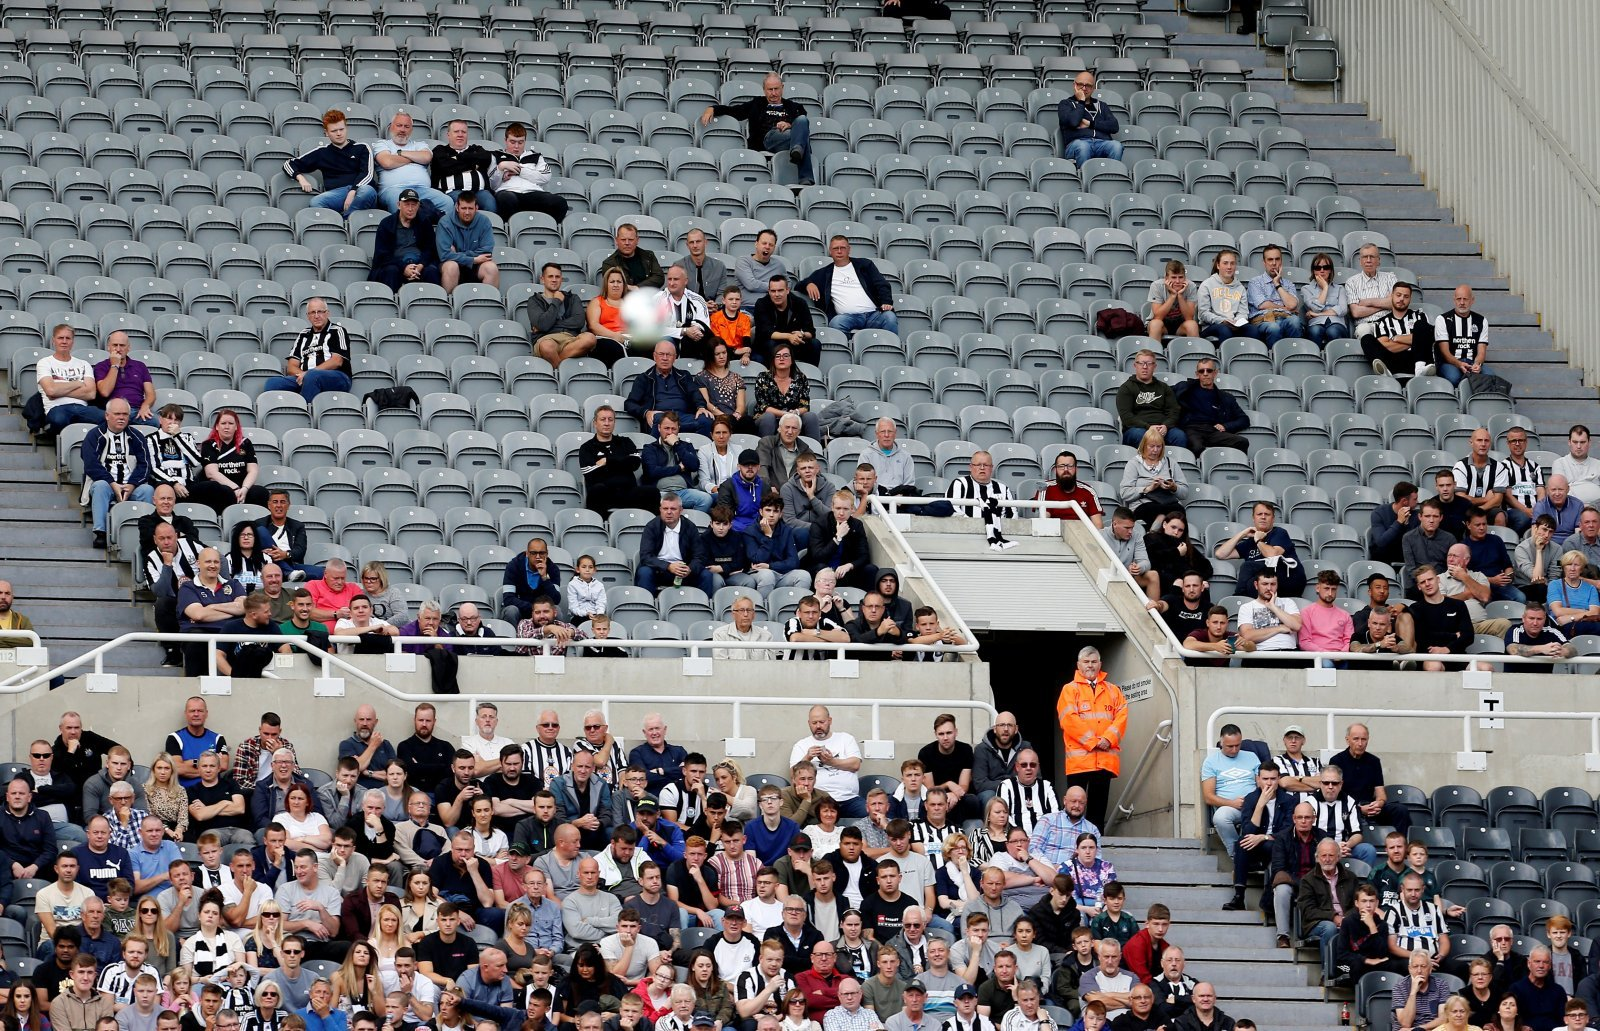 Newcastle United: Fans take issue with St. James' Park 'fortress' claims